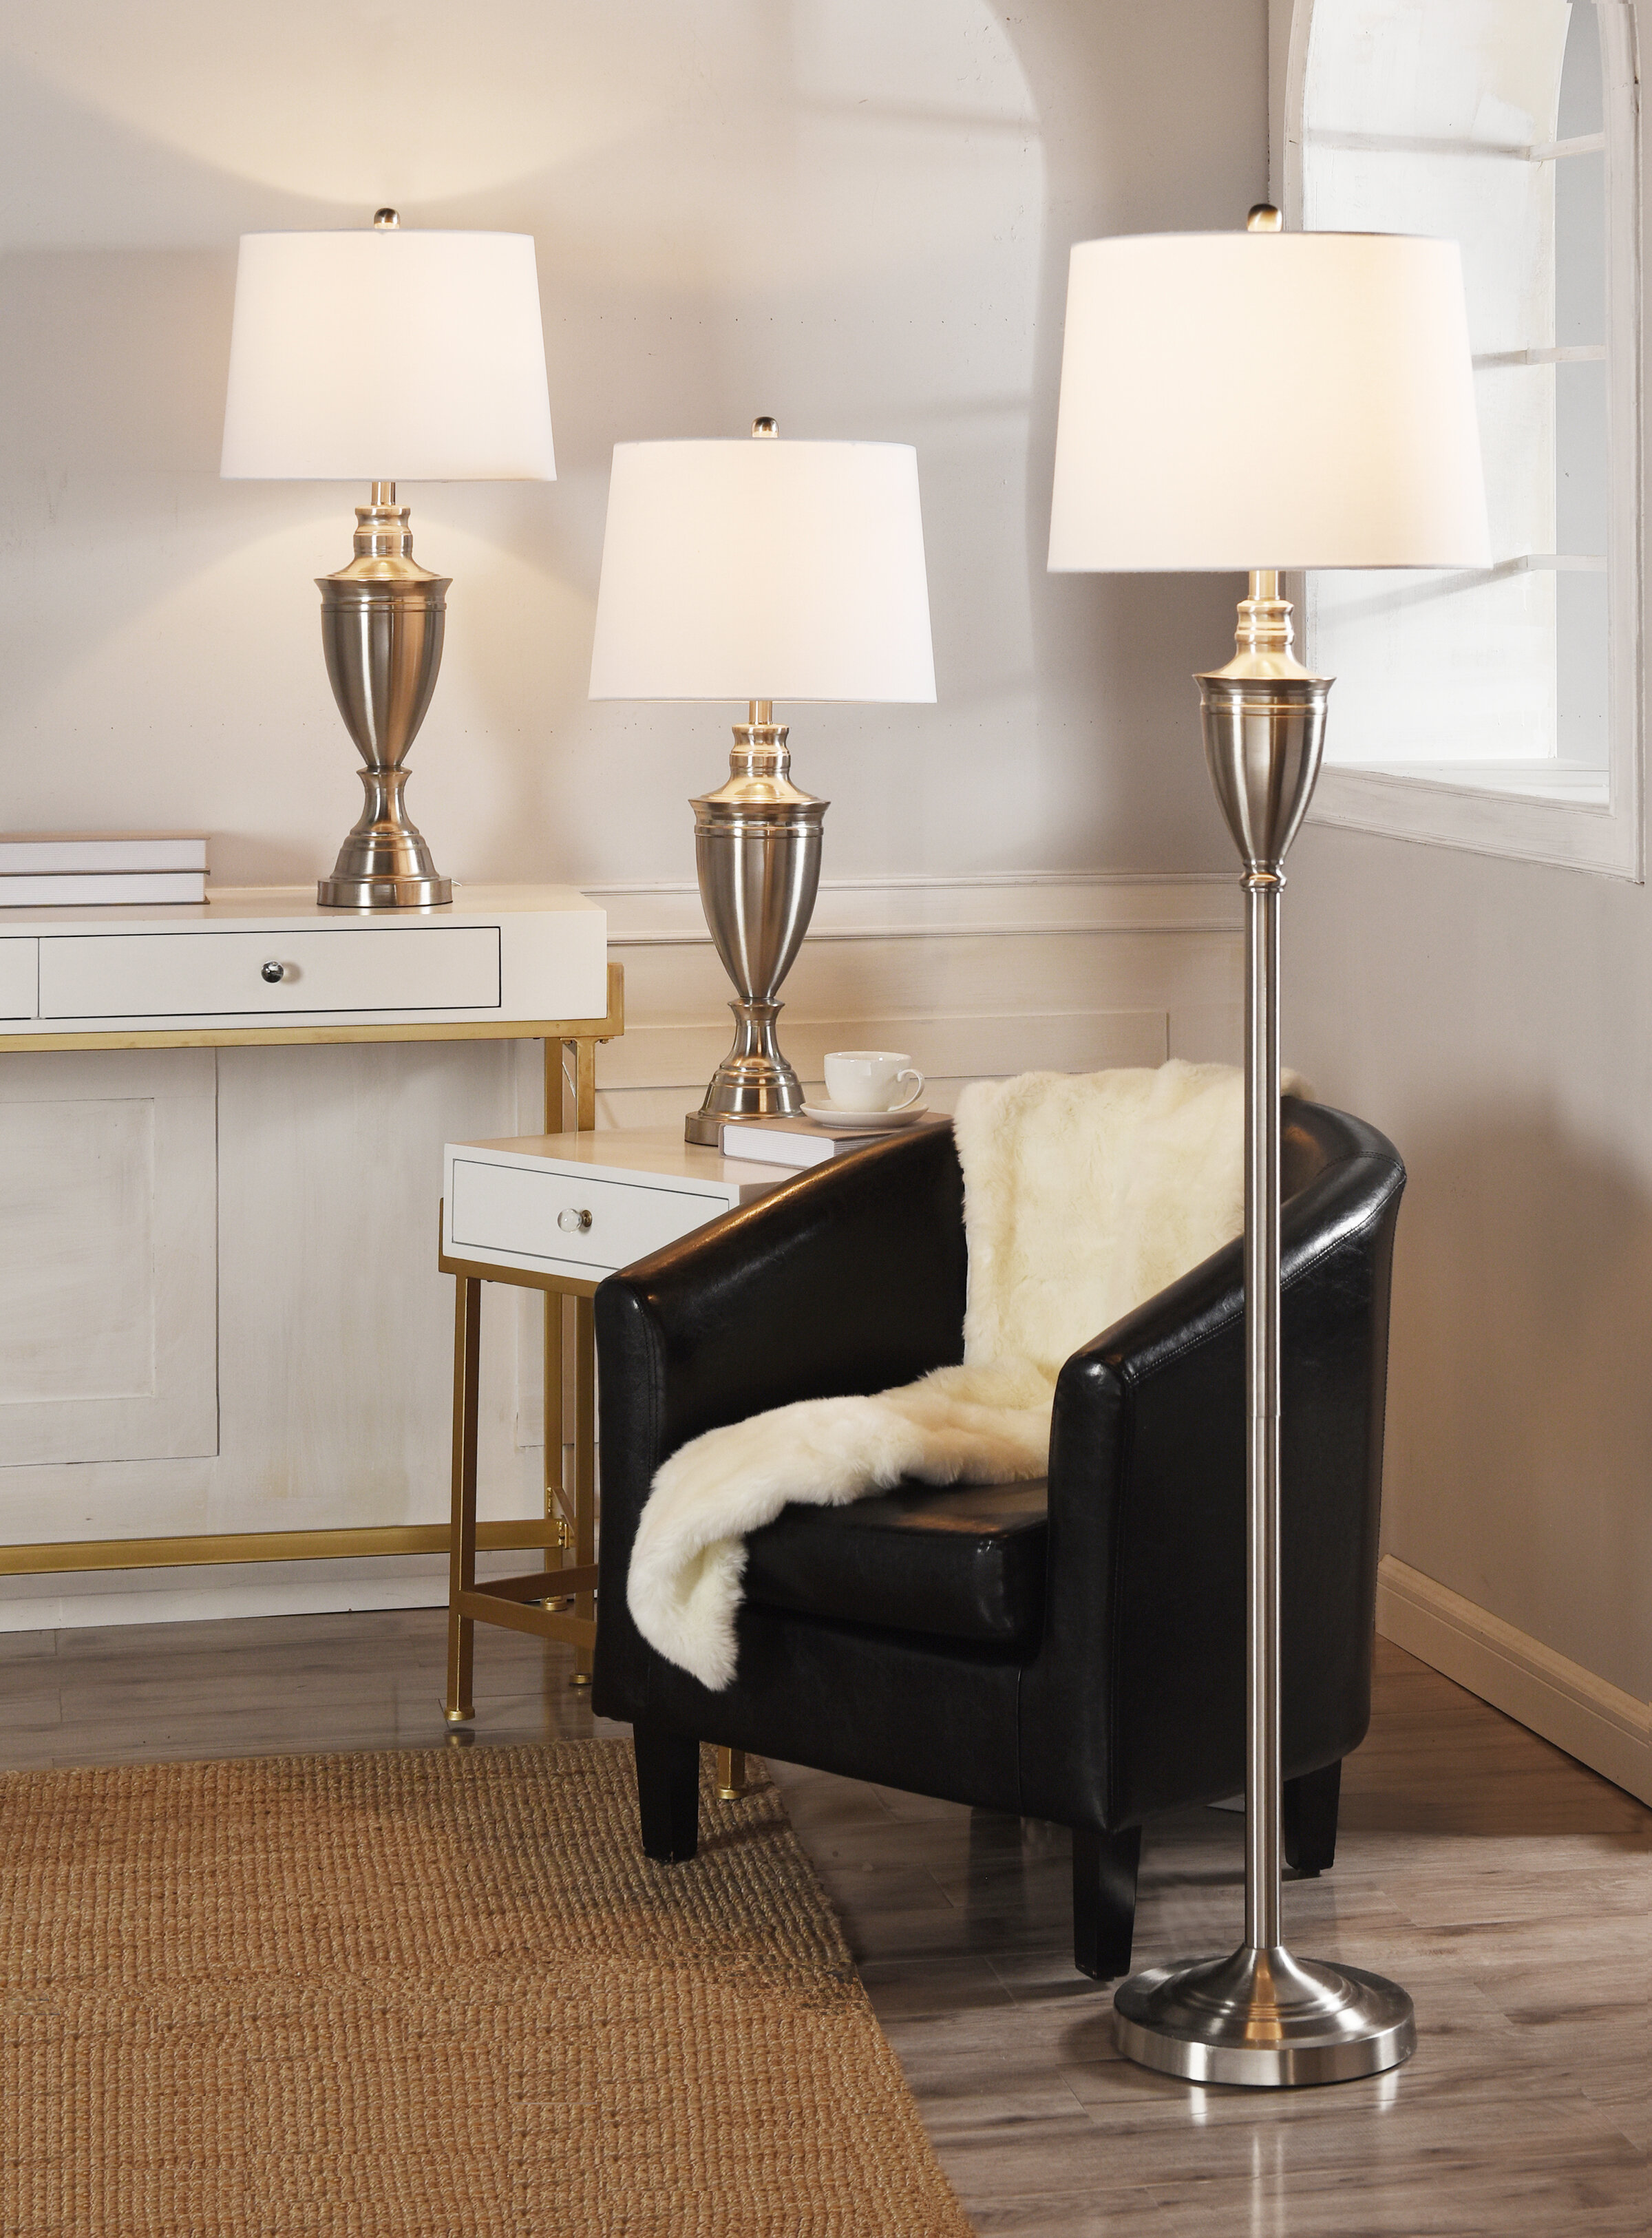 Alarcon 3 Piece Floor And Table Lamp